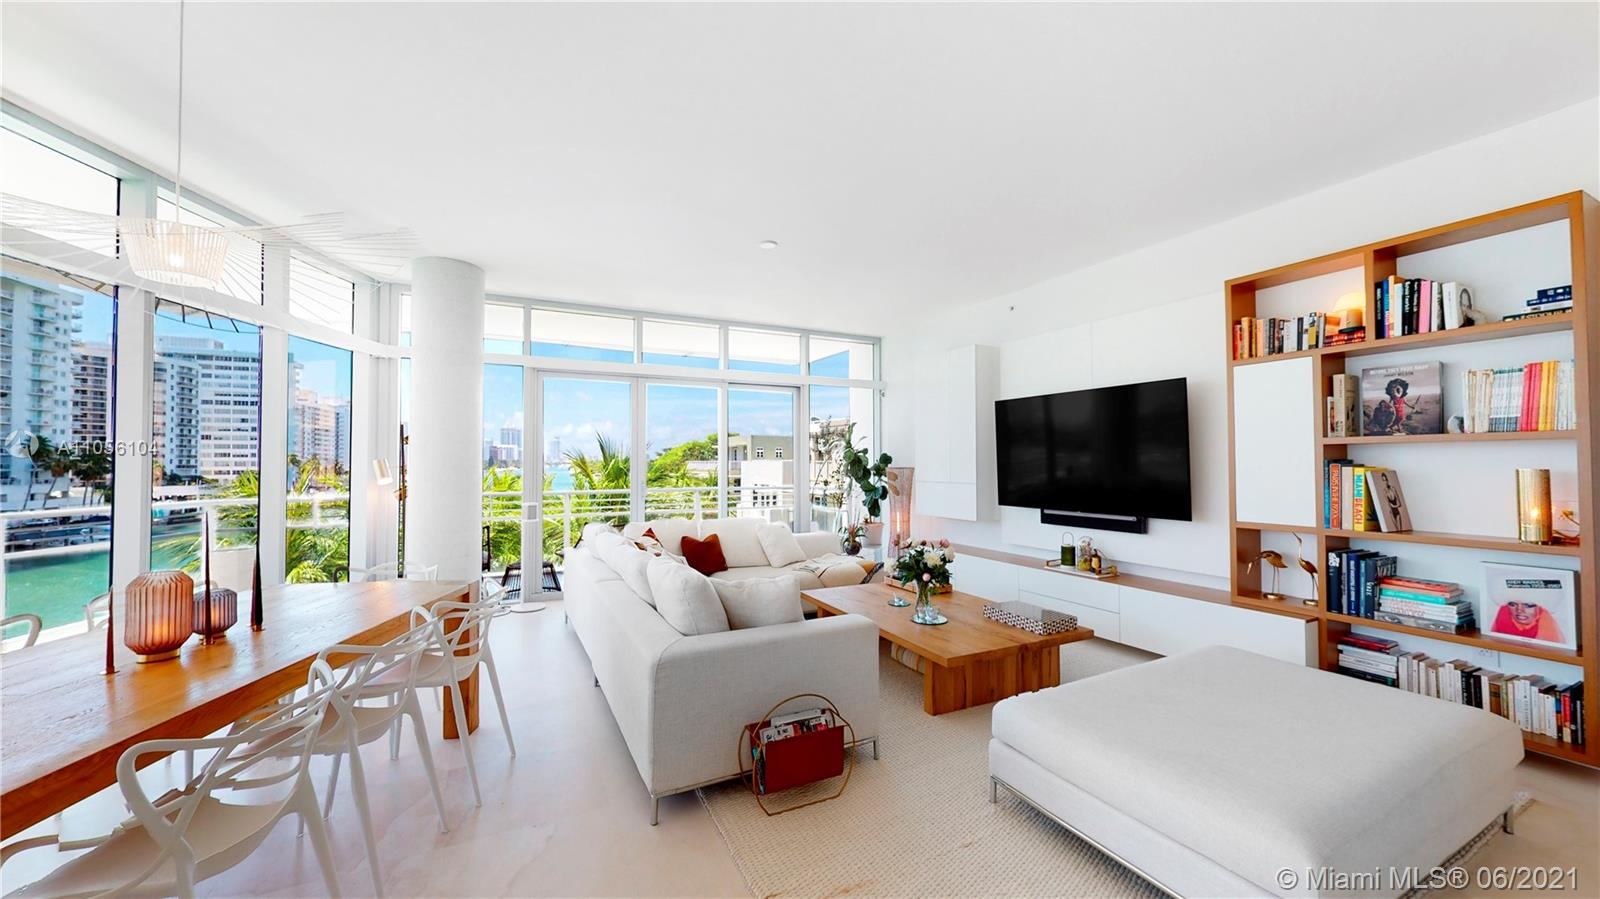 Exquisitely renovated 3 bed condo in sought after Aqua community - Allison Island. This rare SE corner unit features 10 ft ceilings, wraparound balcony, Indian Creek and South Beach views from every direction. Enjoy dining on your balcony & entertaining in your open Bulthaup kitchen complete with Fagor induction cooktop, Wolf warming drawer, and oversized island. Other upgrades: ice maker, wine cooler, electric blinds, built-ins, sink extension. Relax in your master suite with built out double closets. Master bath boasts a tub, 2 sinks & spa shower.   This luxury condo takes island living into the sky at the prestigious Gorlin Building, enjoy a business center, clubhouse, 5,000 SqFt gym, 2 pools, and a concierge that is there for anything you need. Contact us today for a Private Tour!